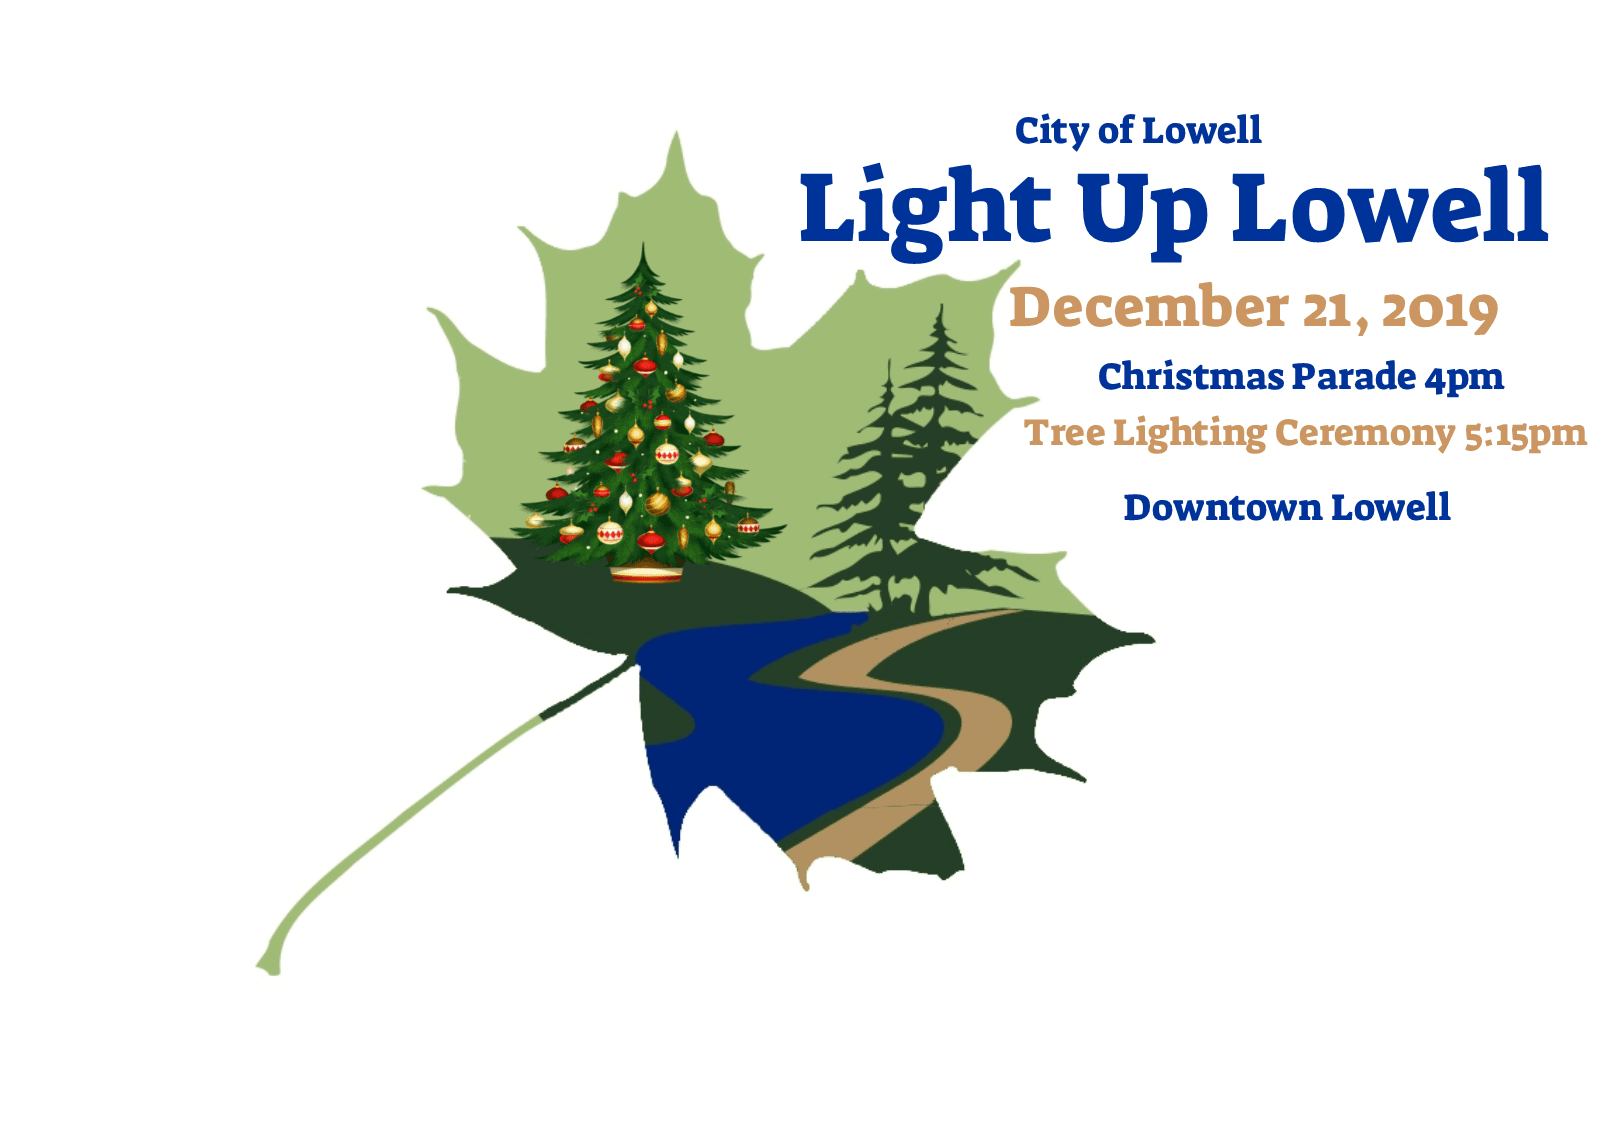 Light Up Lowell 2019